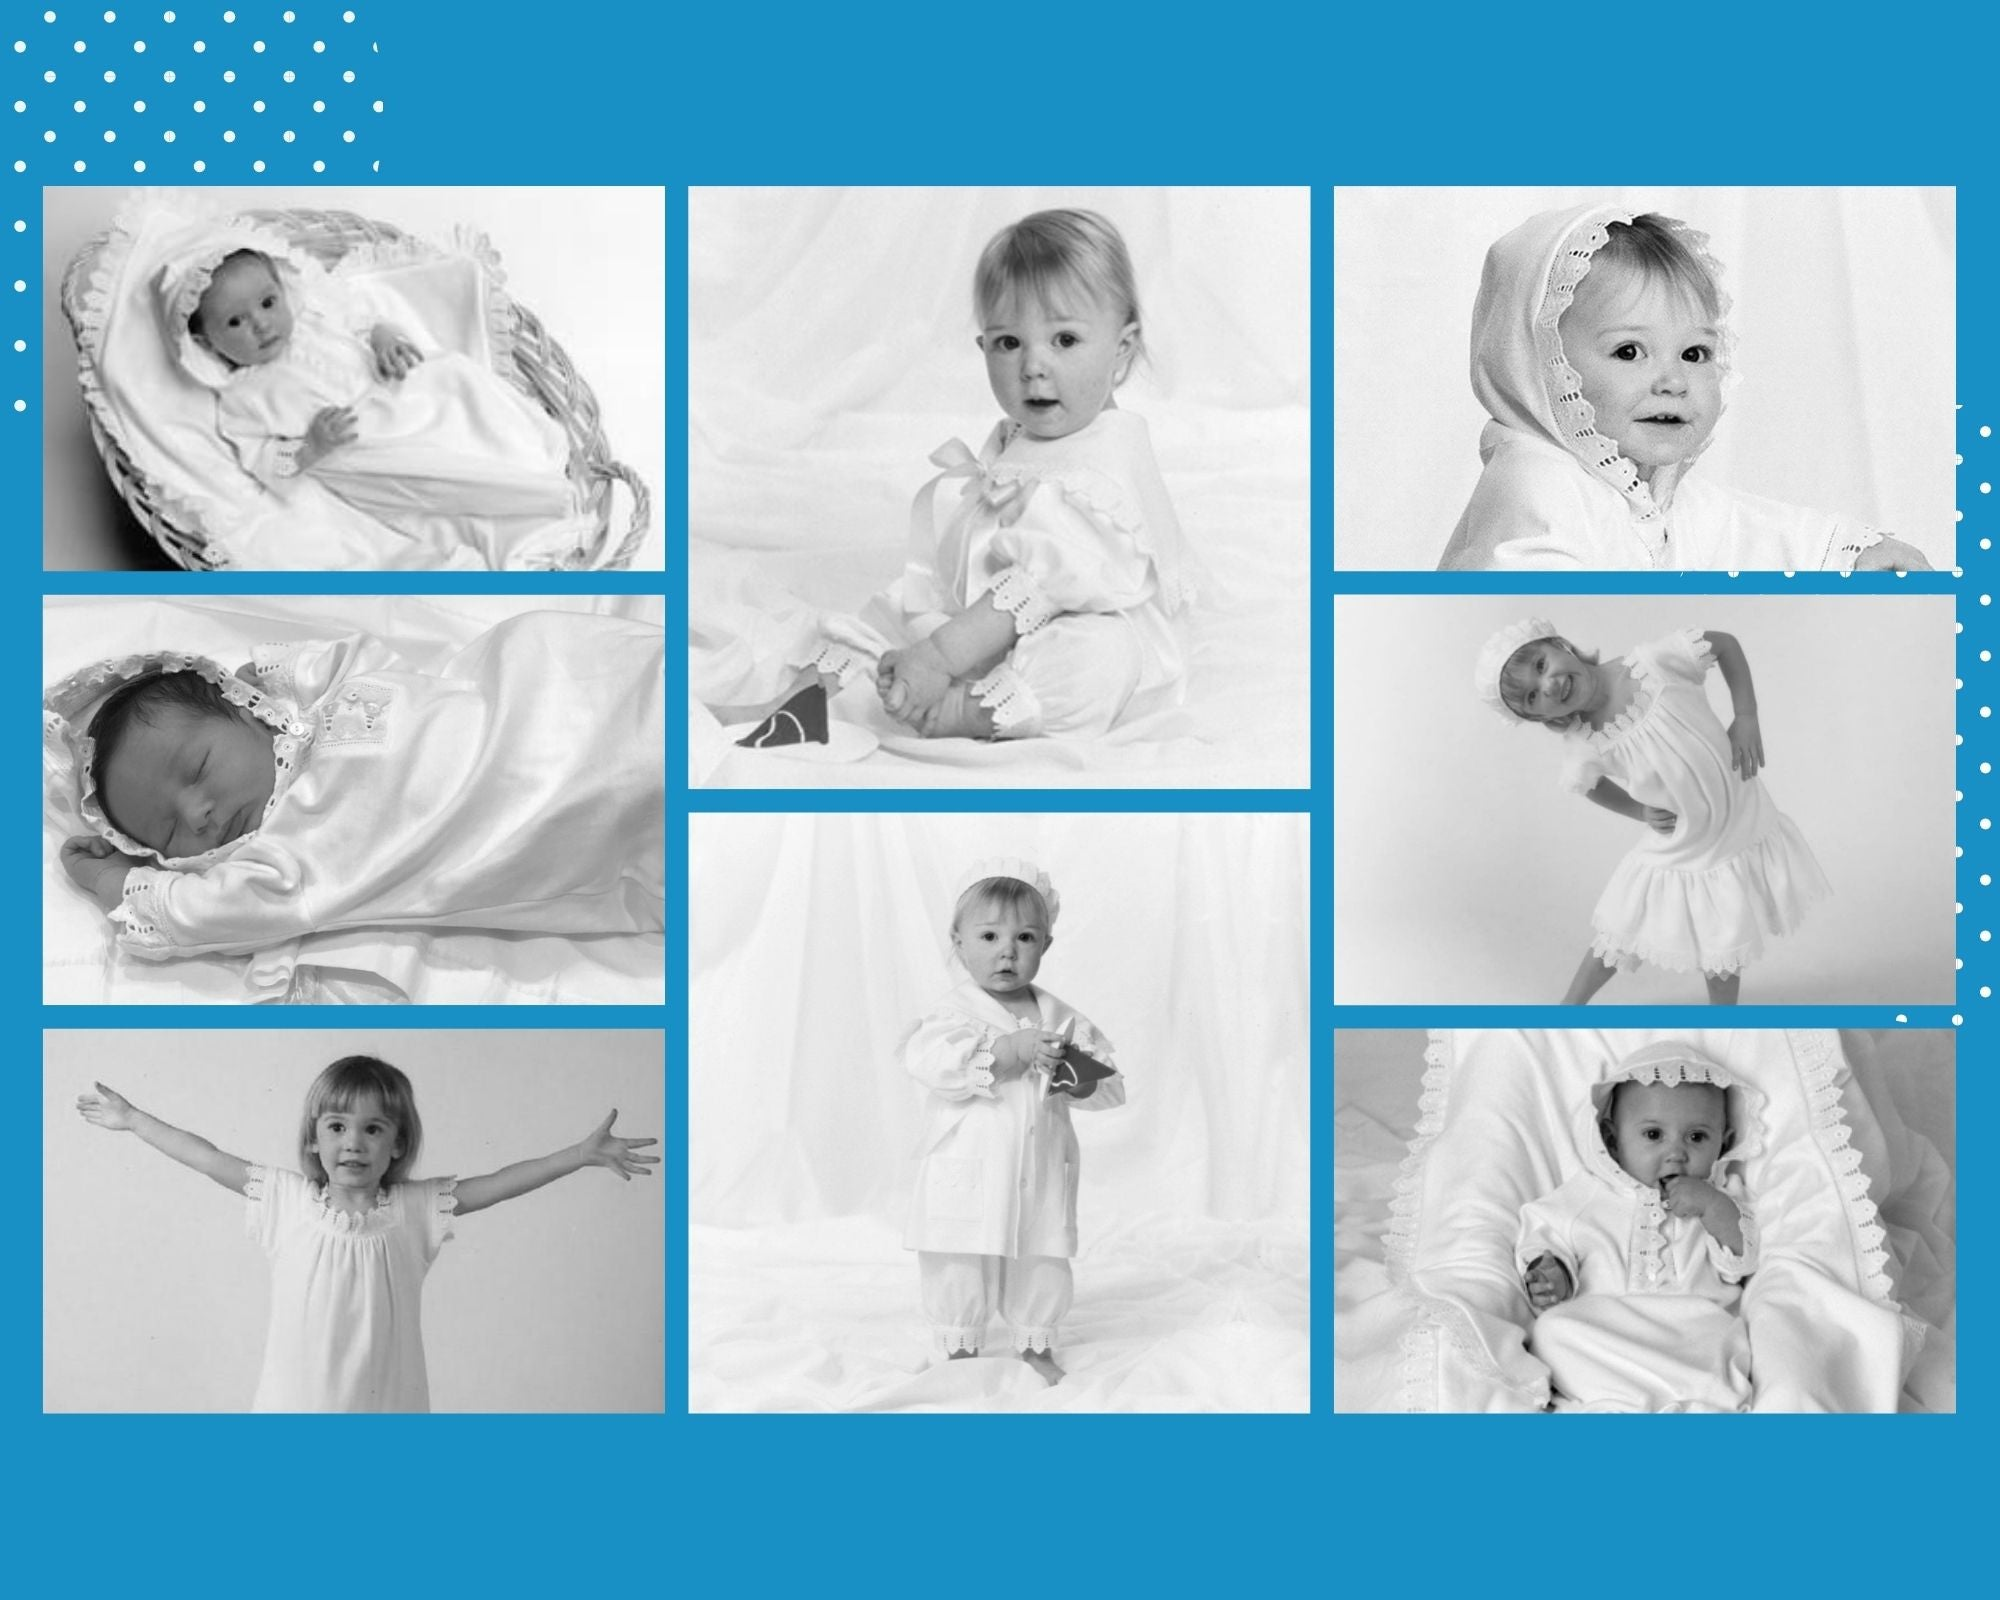 White Lace Children's Clothing for Family Portraits and Baby Photos